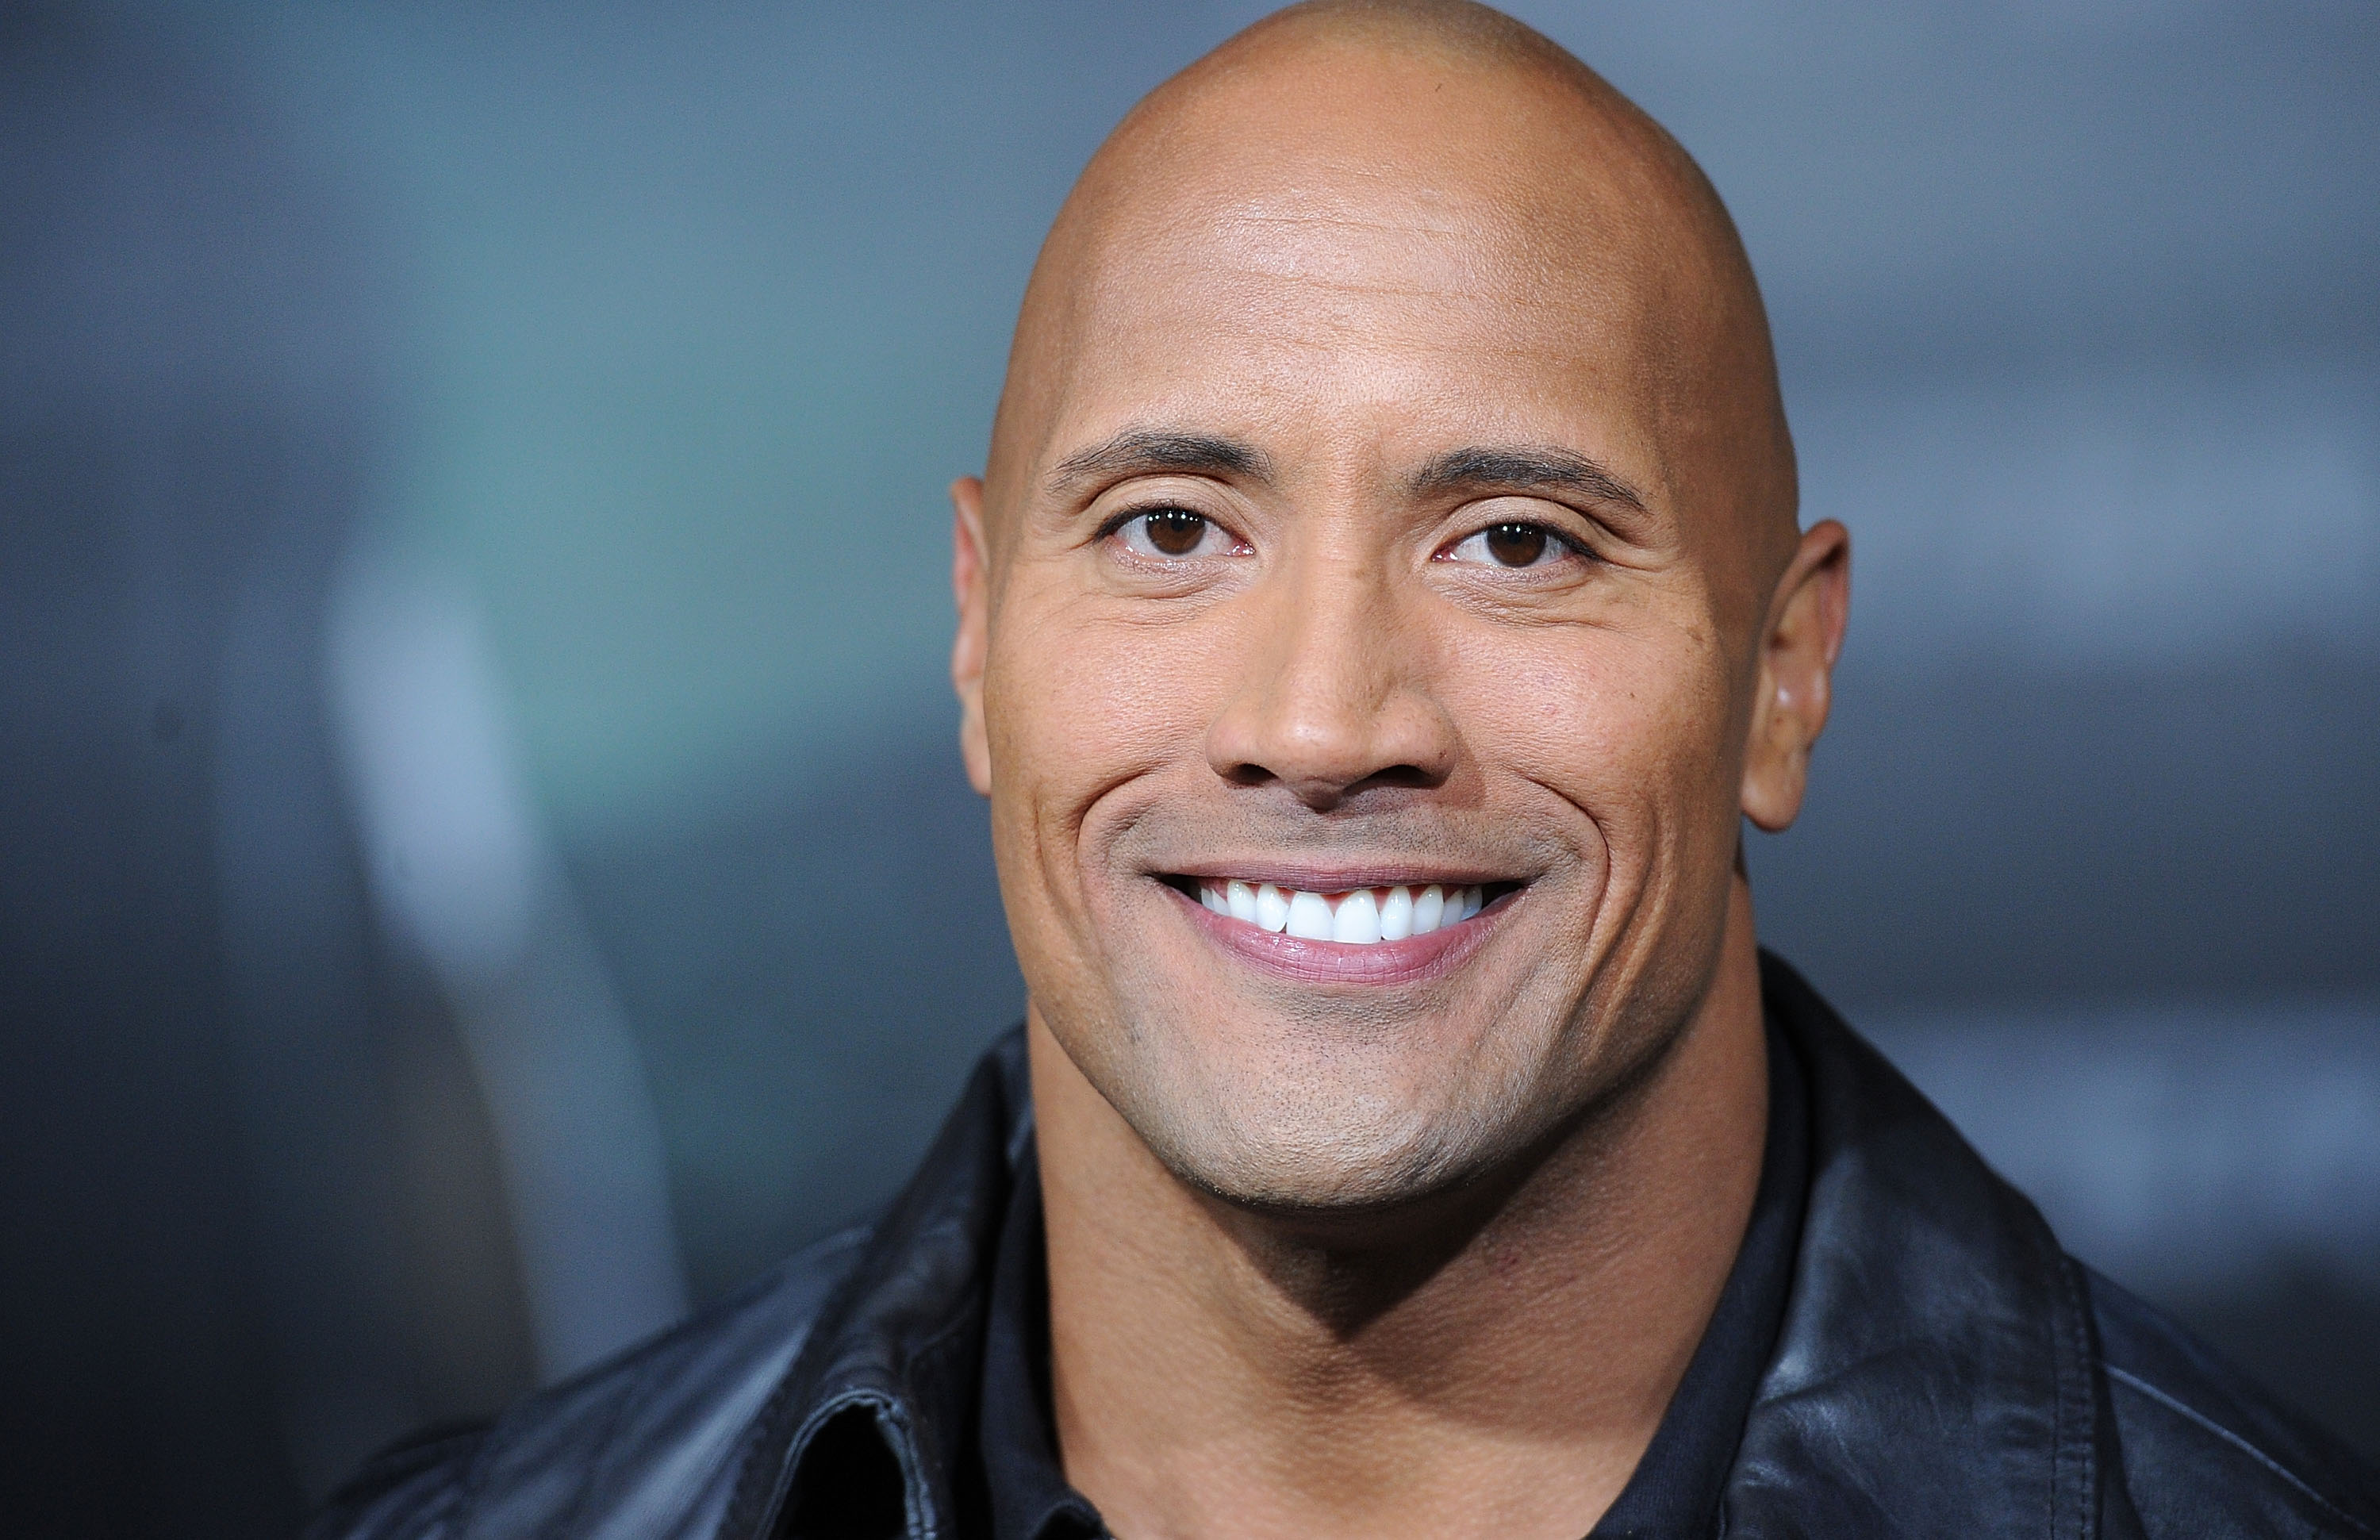 """HOLLYWOOD - NOVEMBER 22: Actor Dwayne Johnson arrives at the """"Faster"""" Los Angeles Premiere at Grauman's Chinese Theatre on November 22, 2010 in Hollywood, California. (Photo by Jason Merritt/Getty Images)"""